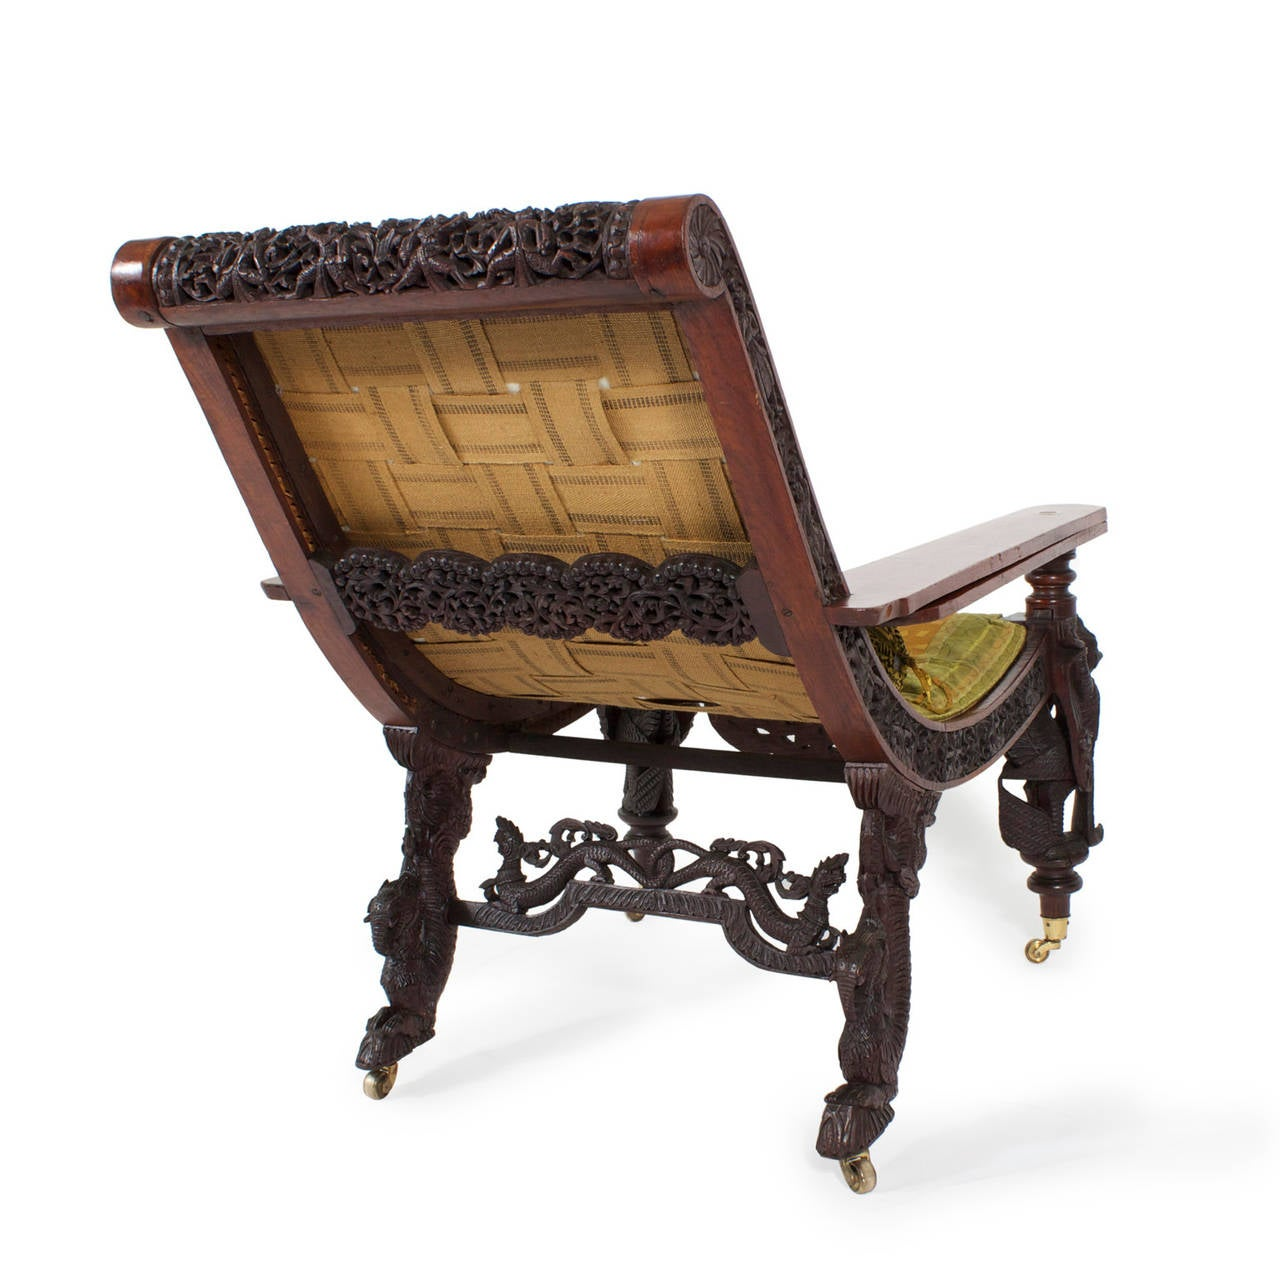 chair with leg rest india office for gaming 19th century anglo-indian carved plantation or planters at 1stdibs